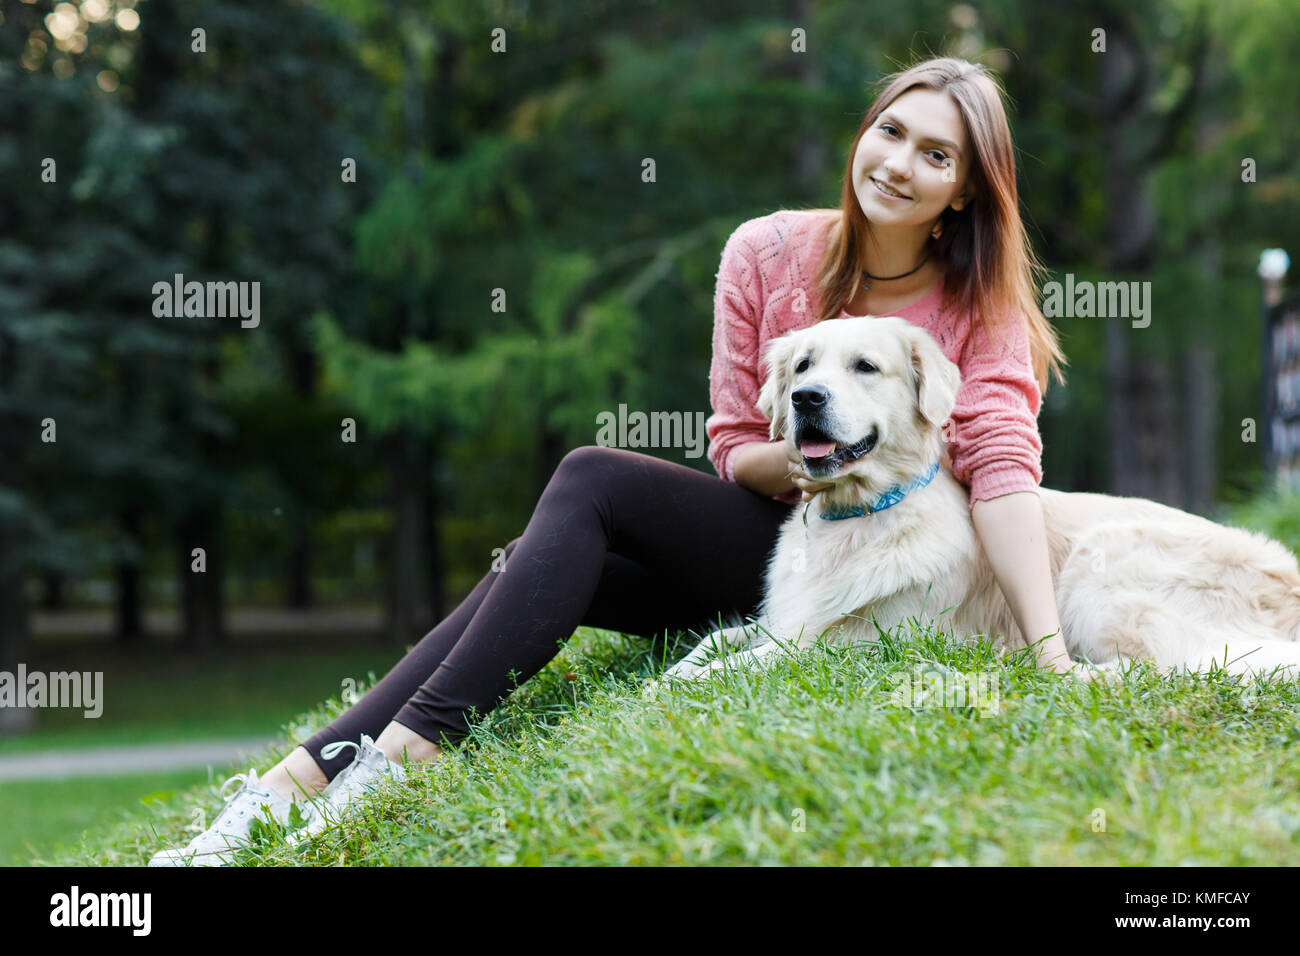 Photo of woman and dog sitting on lawn - Stock Image